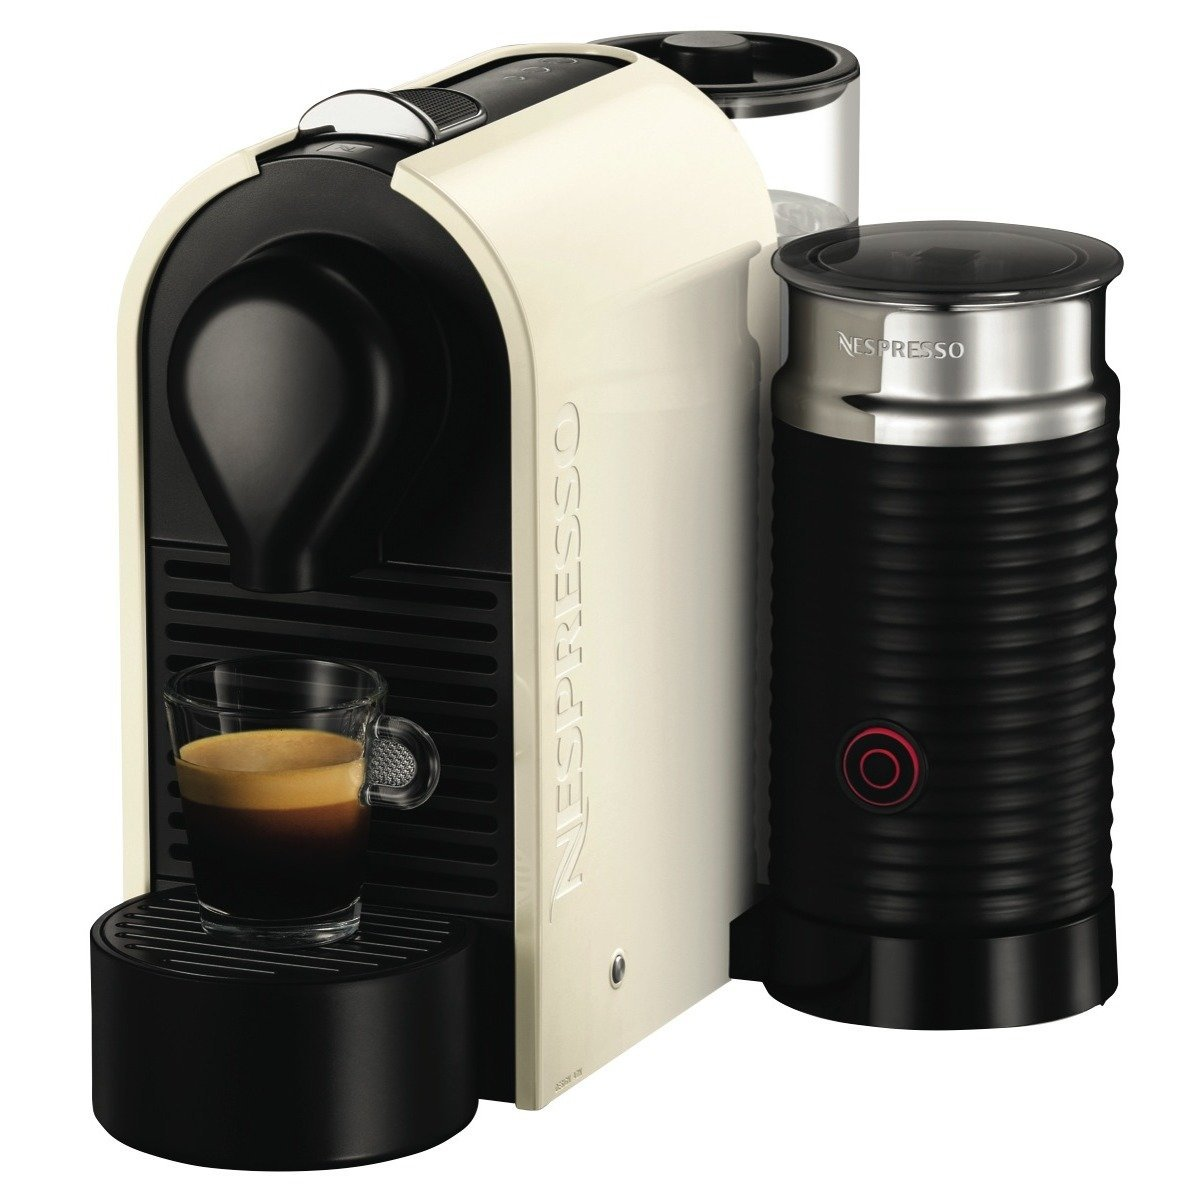 Coffee Maker How Much Coffee : Compare Breville Nespresso BEC300MW Coffee Maker prices in Australia & Save